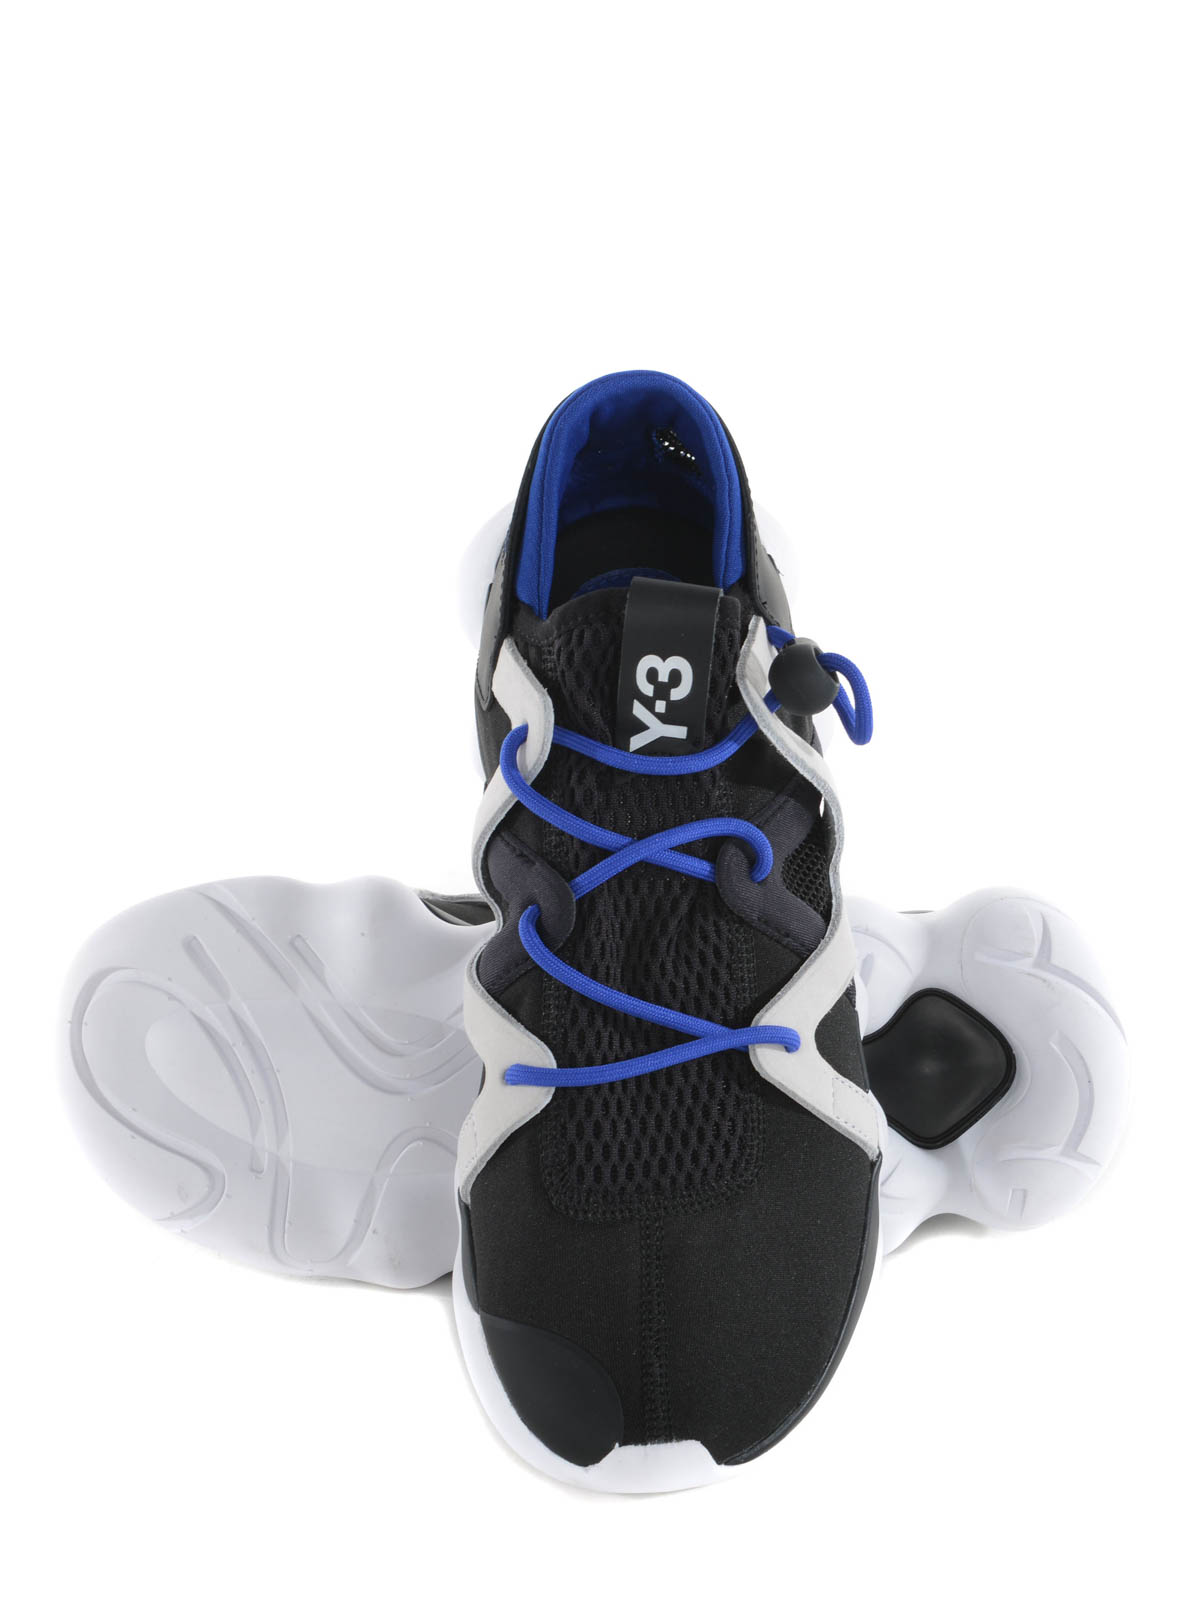 uk availability d2ebe 1f403 ADIDAS Y-3 buy online Kyujo Low sneakers